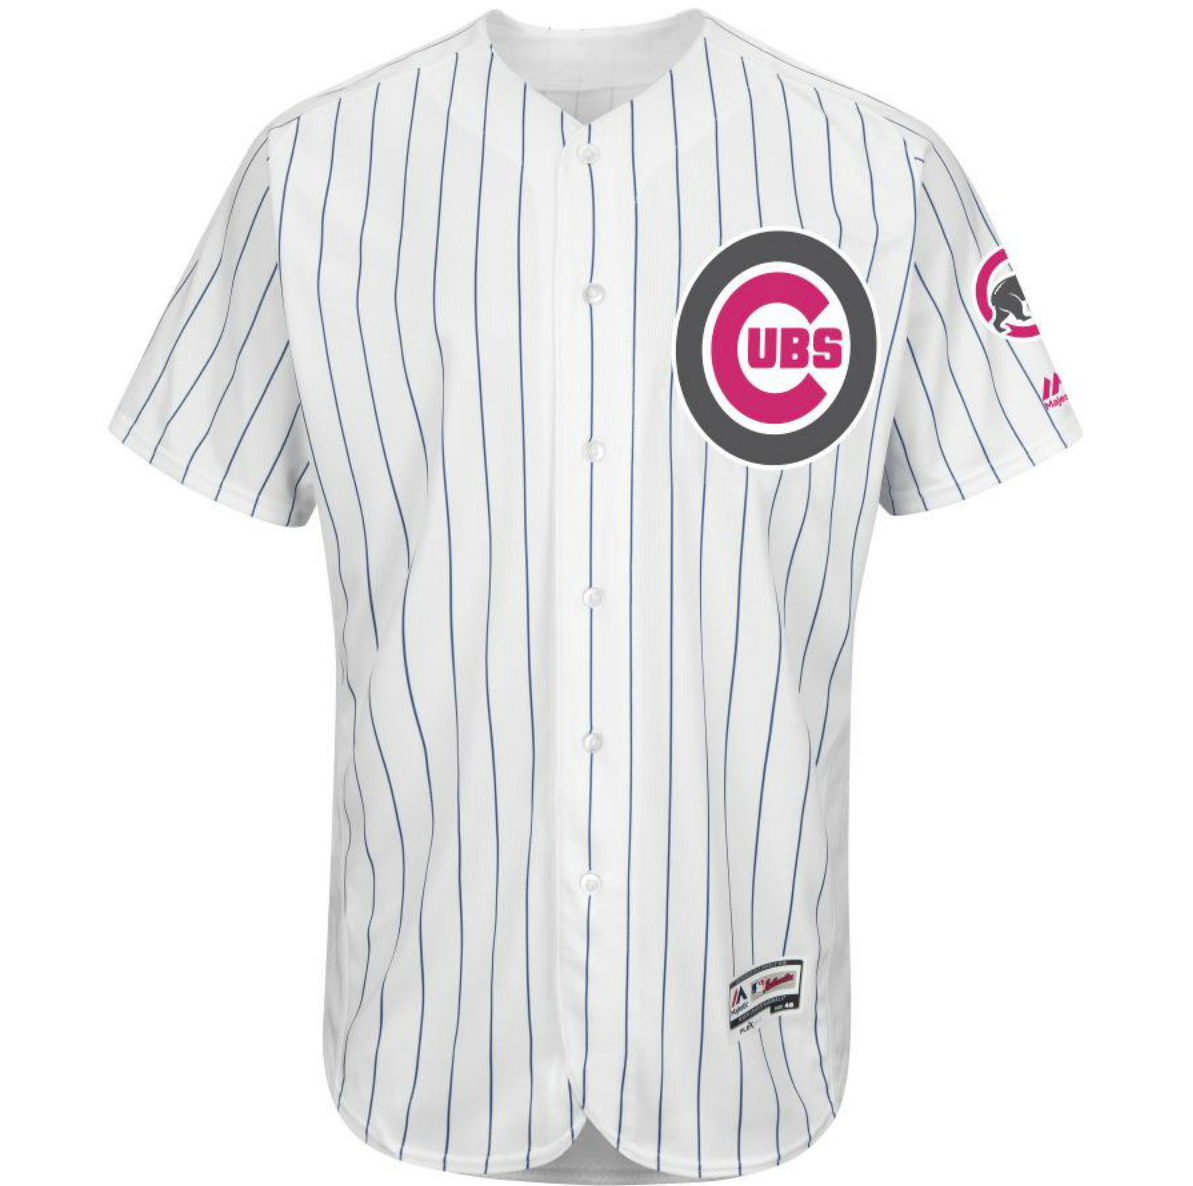 f2b668678ad MLB Releases 2016 Special Event Jerseys And Caps - Bleed Cubbie Blue